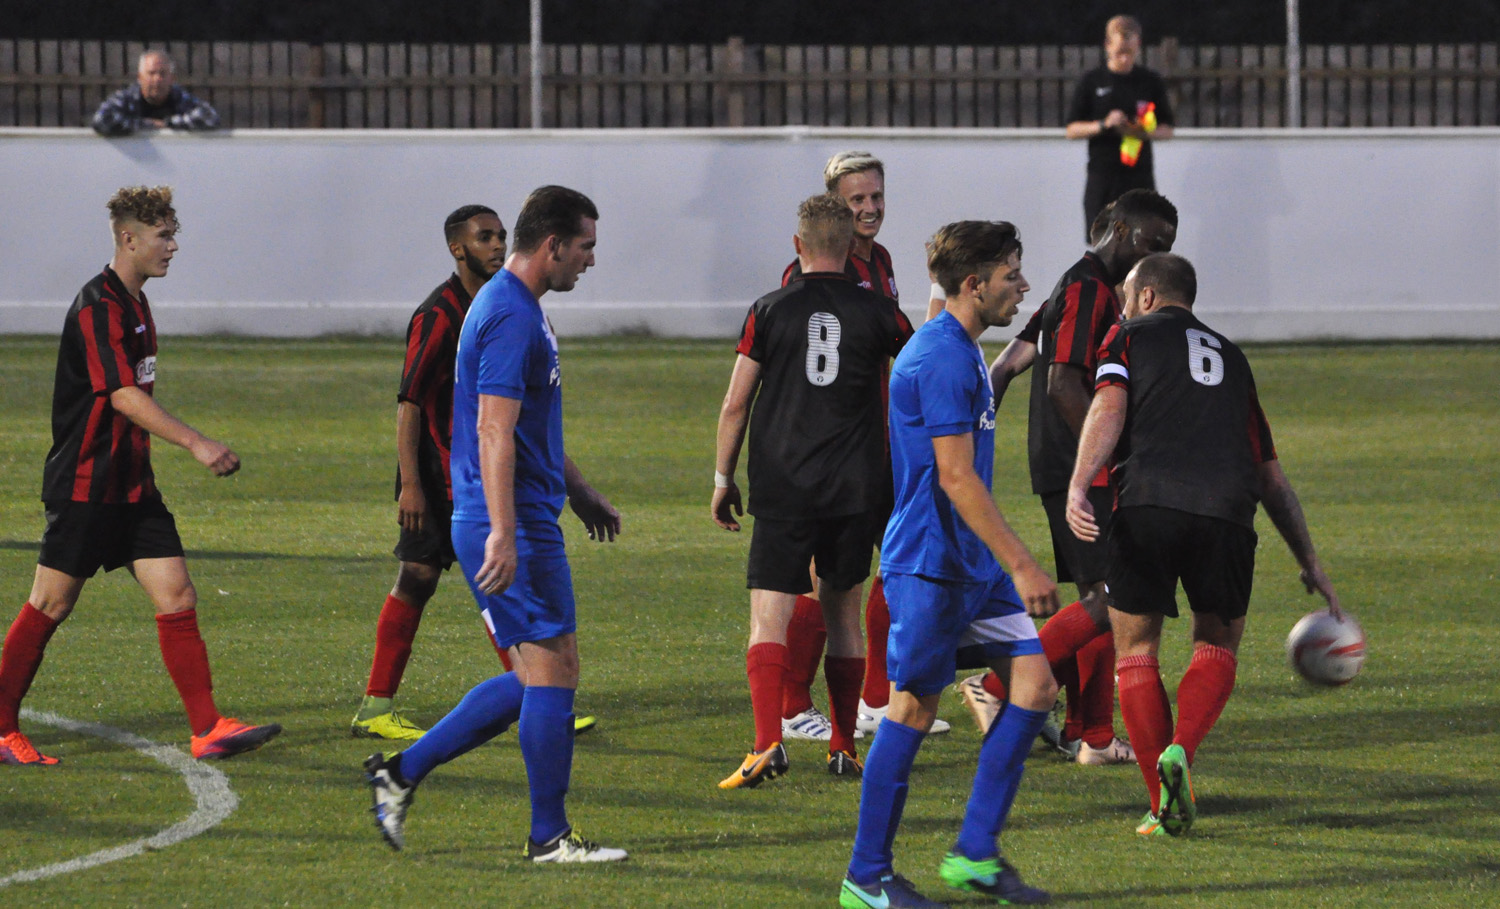 coggeshall-5-1-stanway-rovers-01-08-17-34